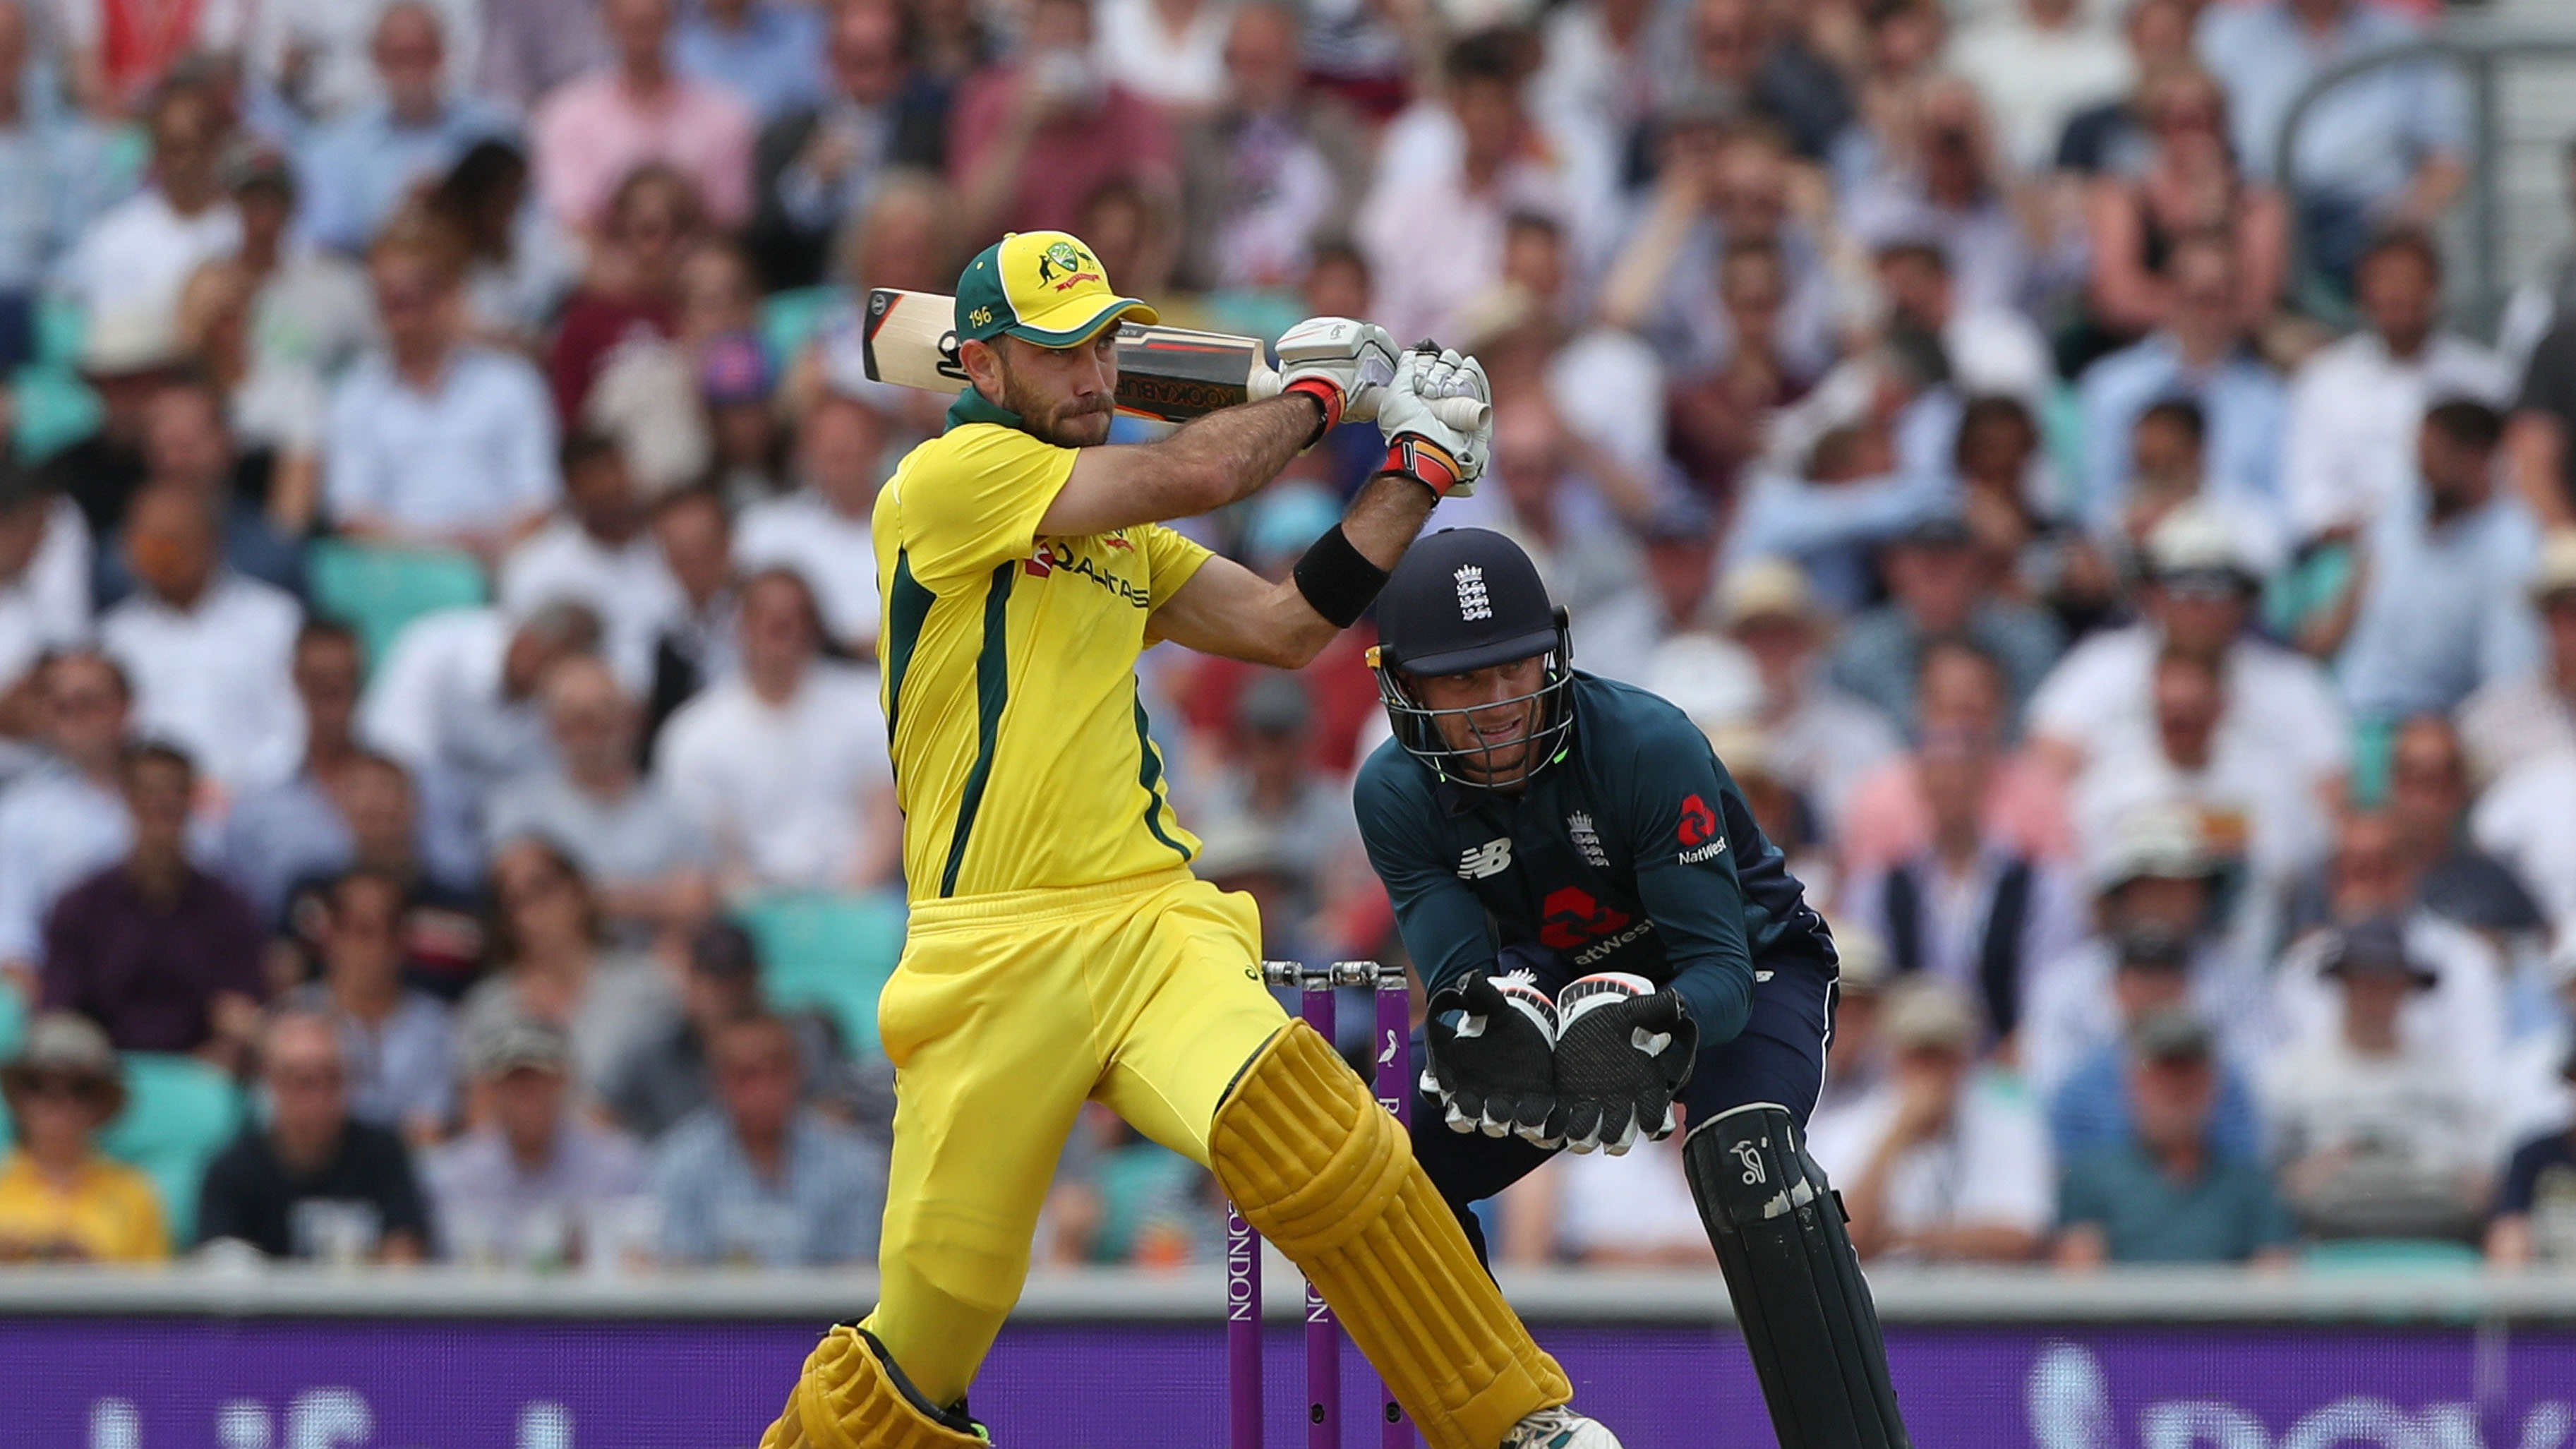 Australia didn't really have any answer to England's brand of ODI game, says Glenn Maxwell